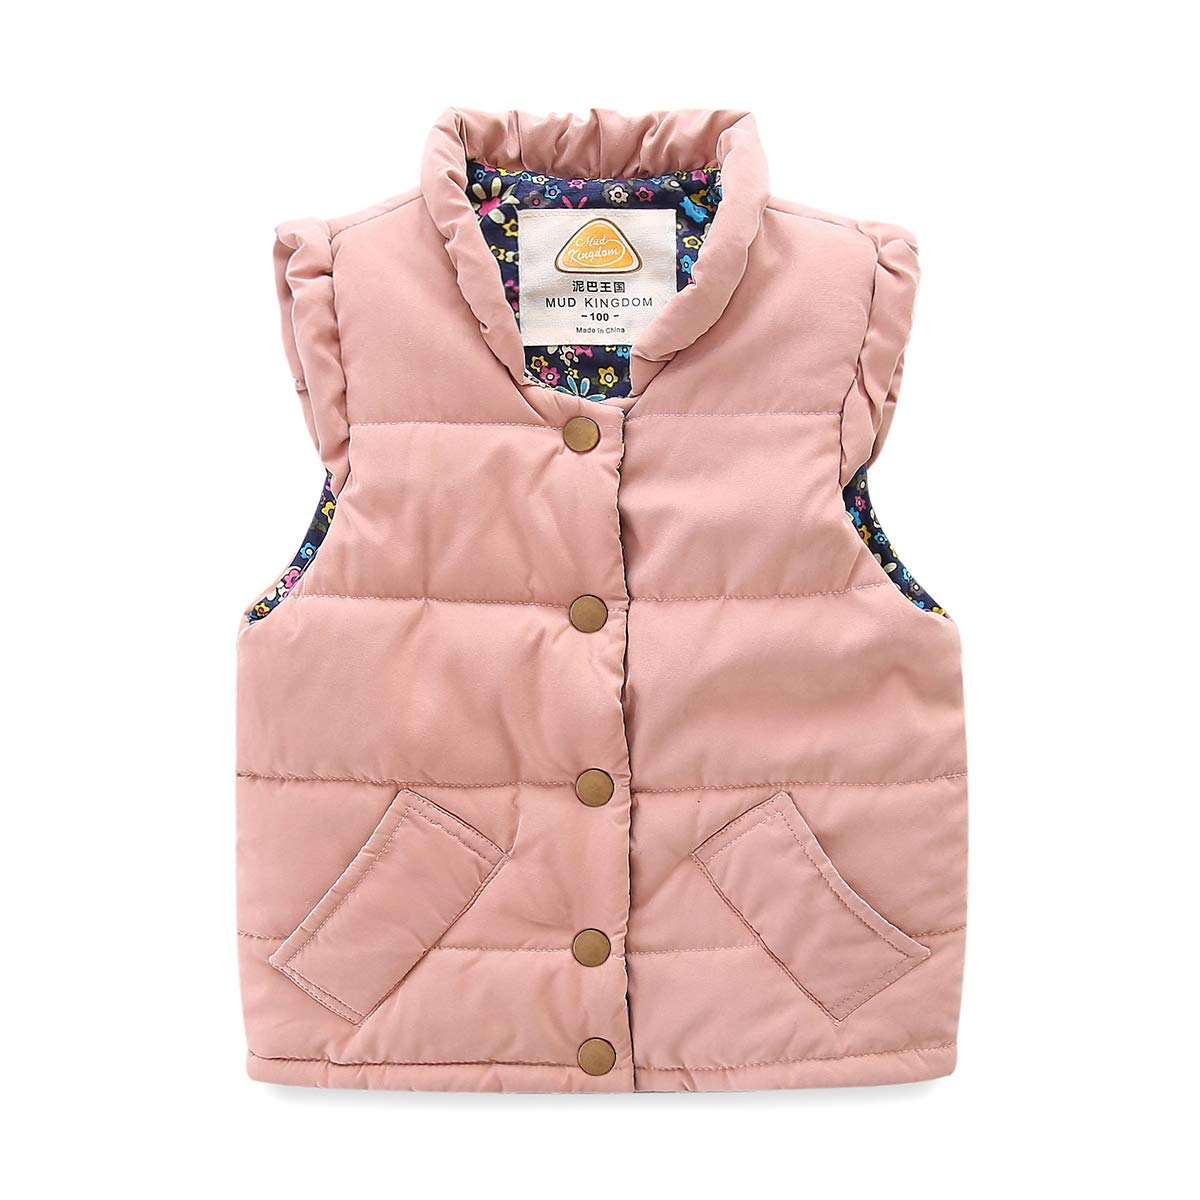 Mud Kingdom Toddler Girls Vests Outerwear Lightweight Cute Floral 2T Pink by Mud Kingdom